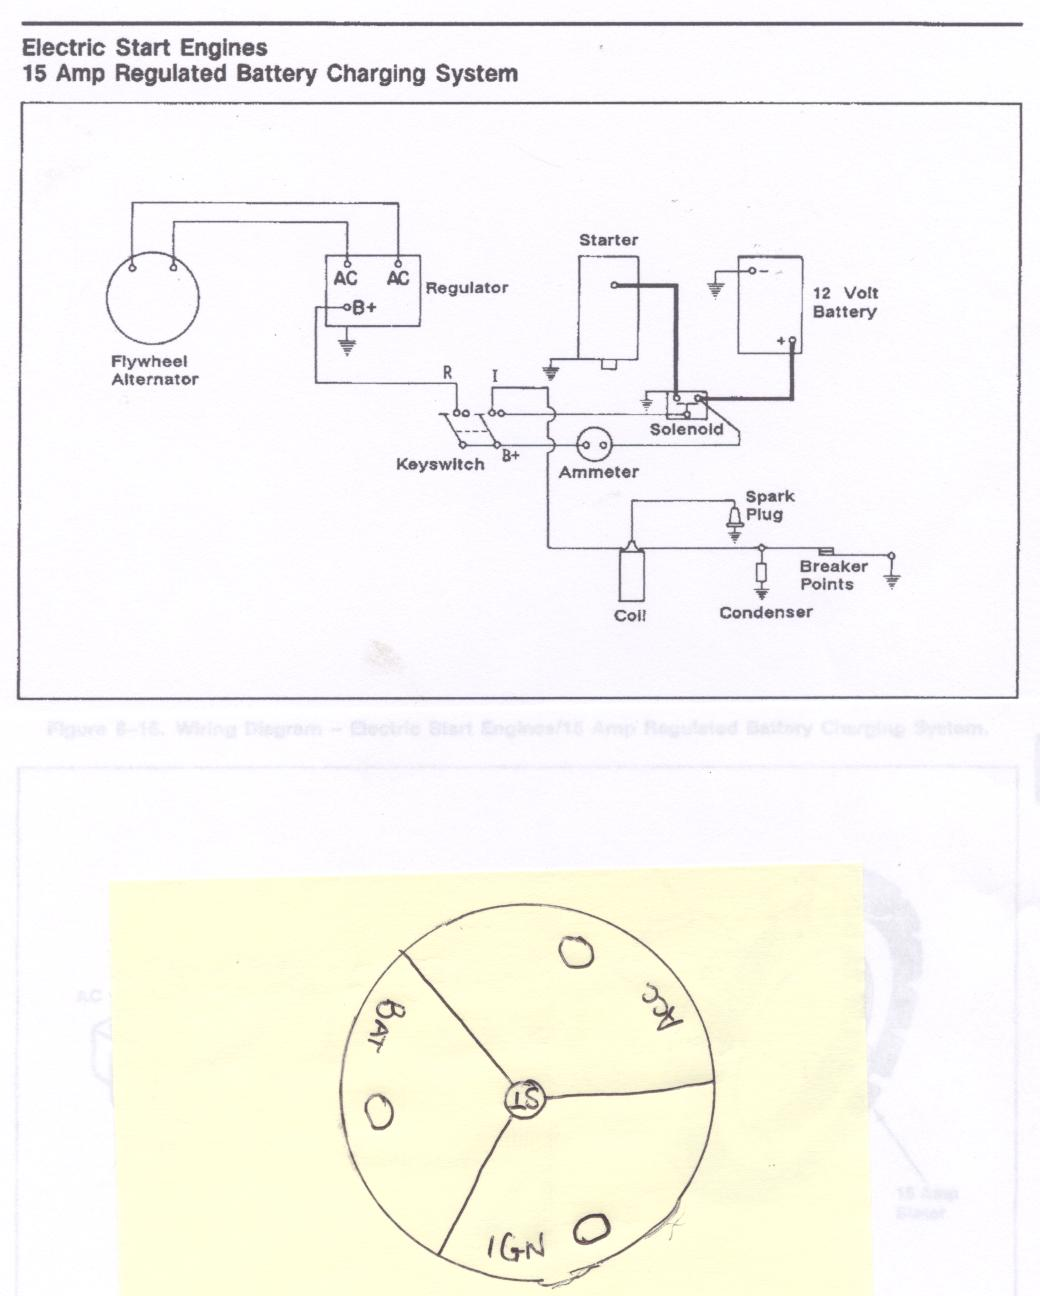 Ford Tractor Ignition Diagram Another Blog About Wiring 3000 Engine 2000 Free Image For User 8n